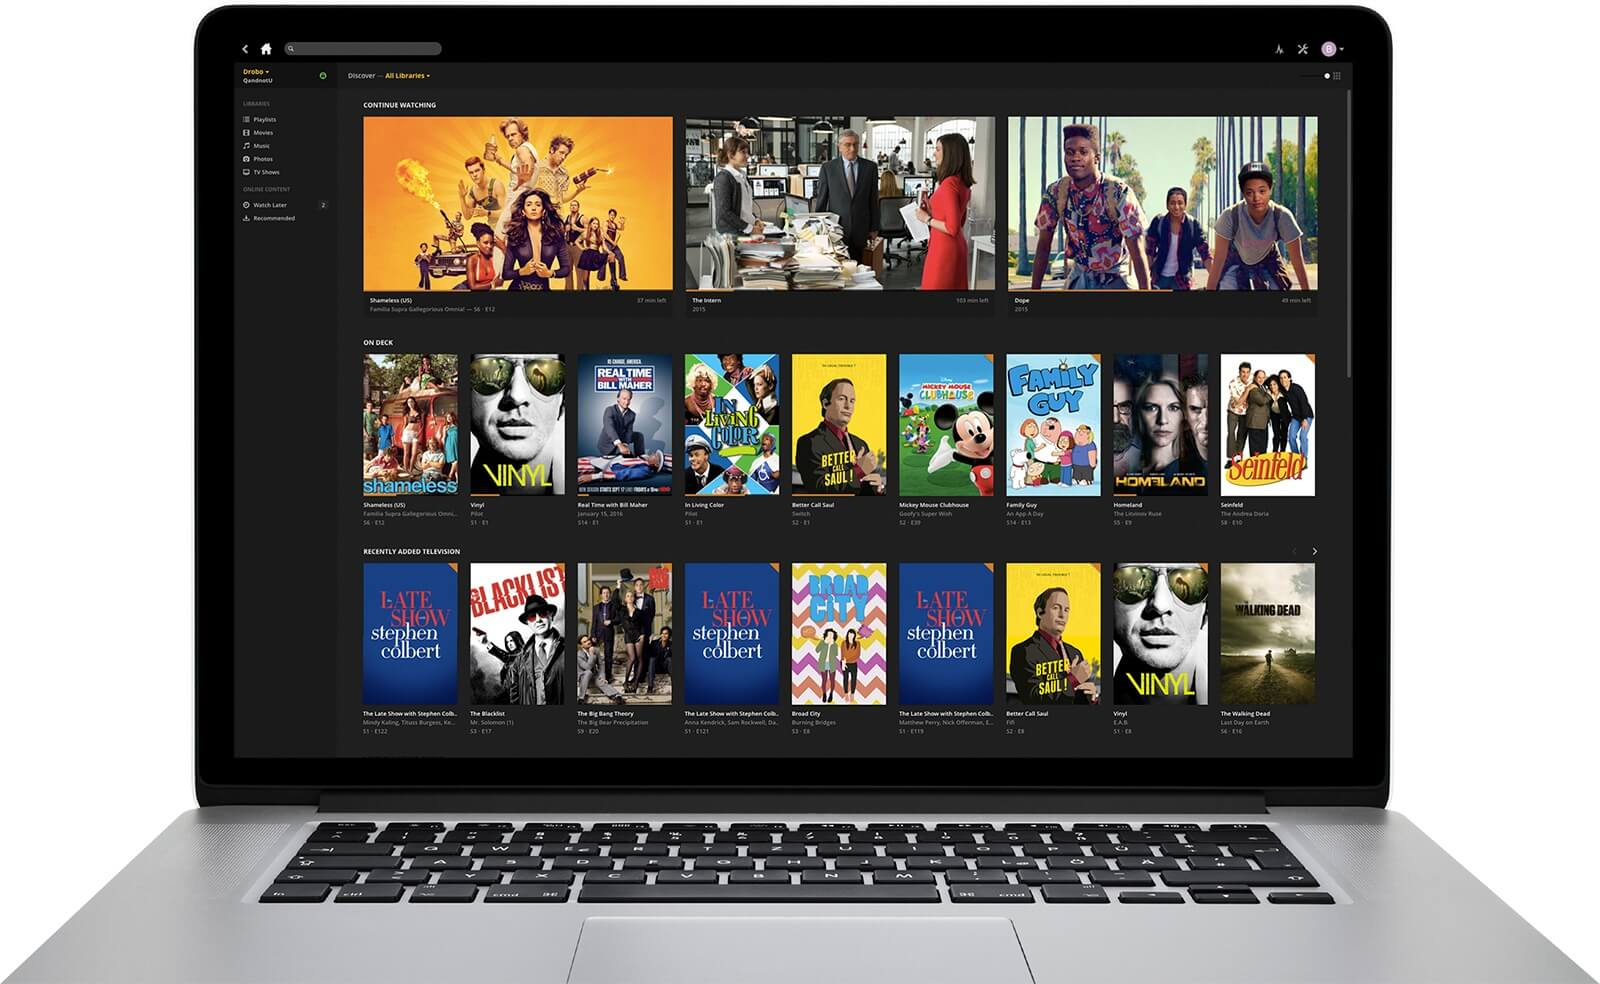 Plex changes its new privacy policy after backlash, clarified it's